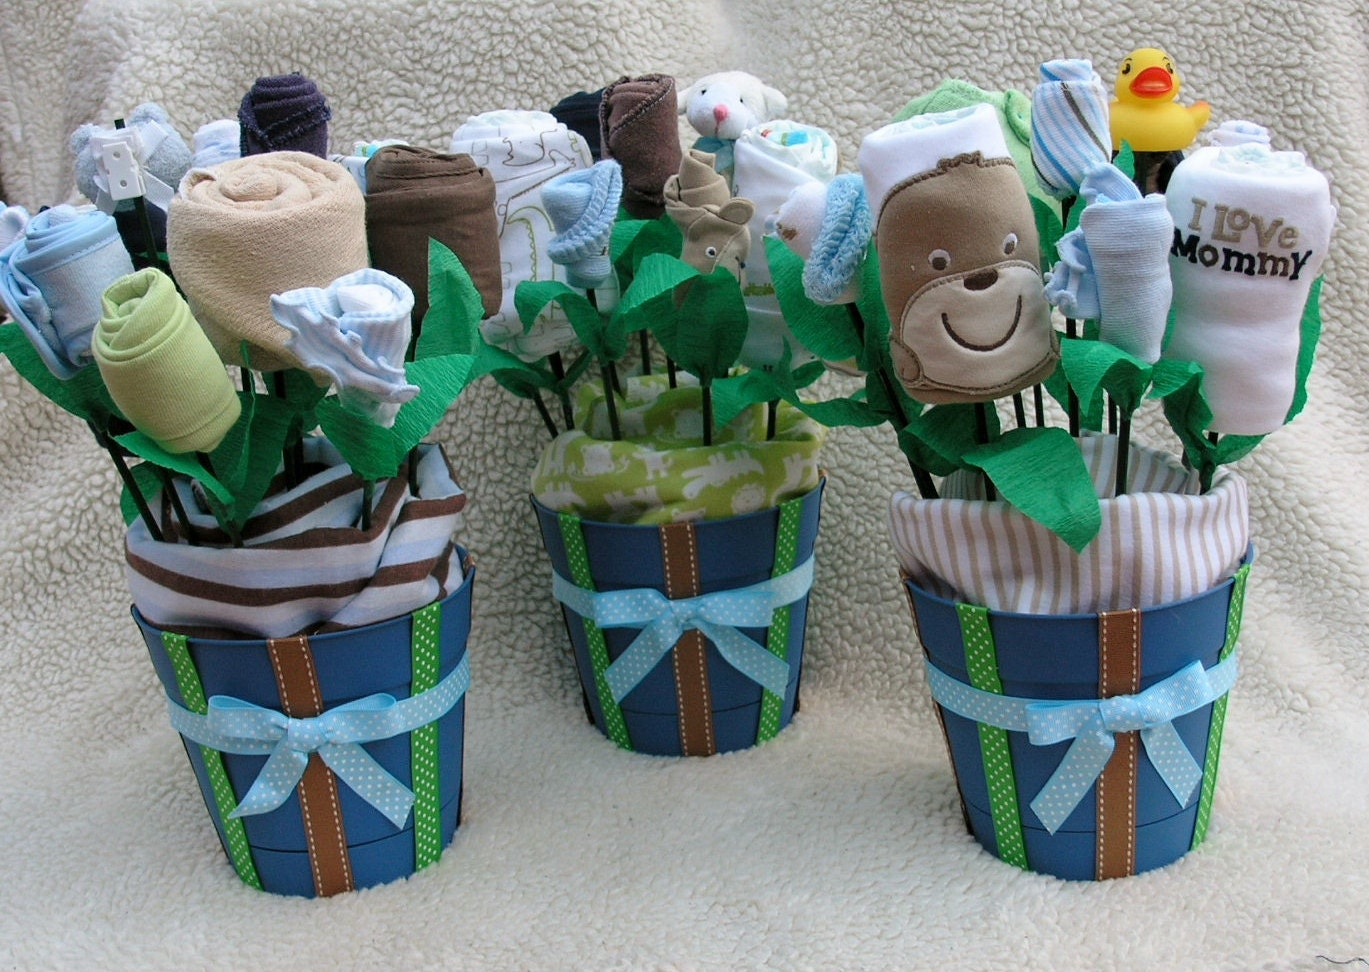 Duck baby shower on pinterest rubber duck baby boy for Baby showers decoration